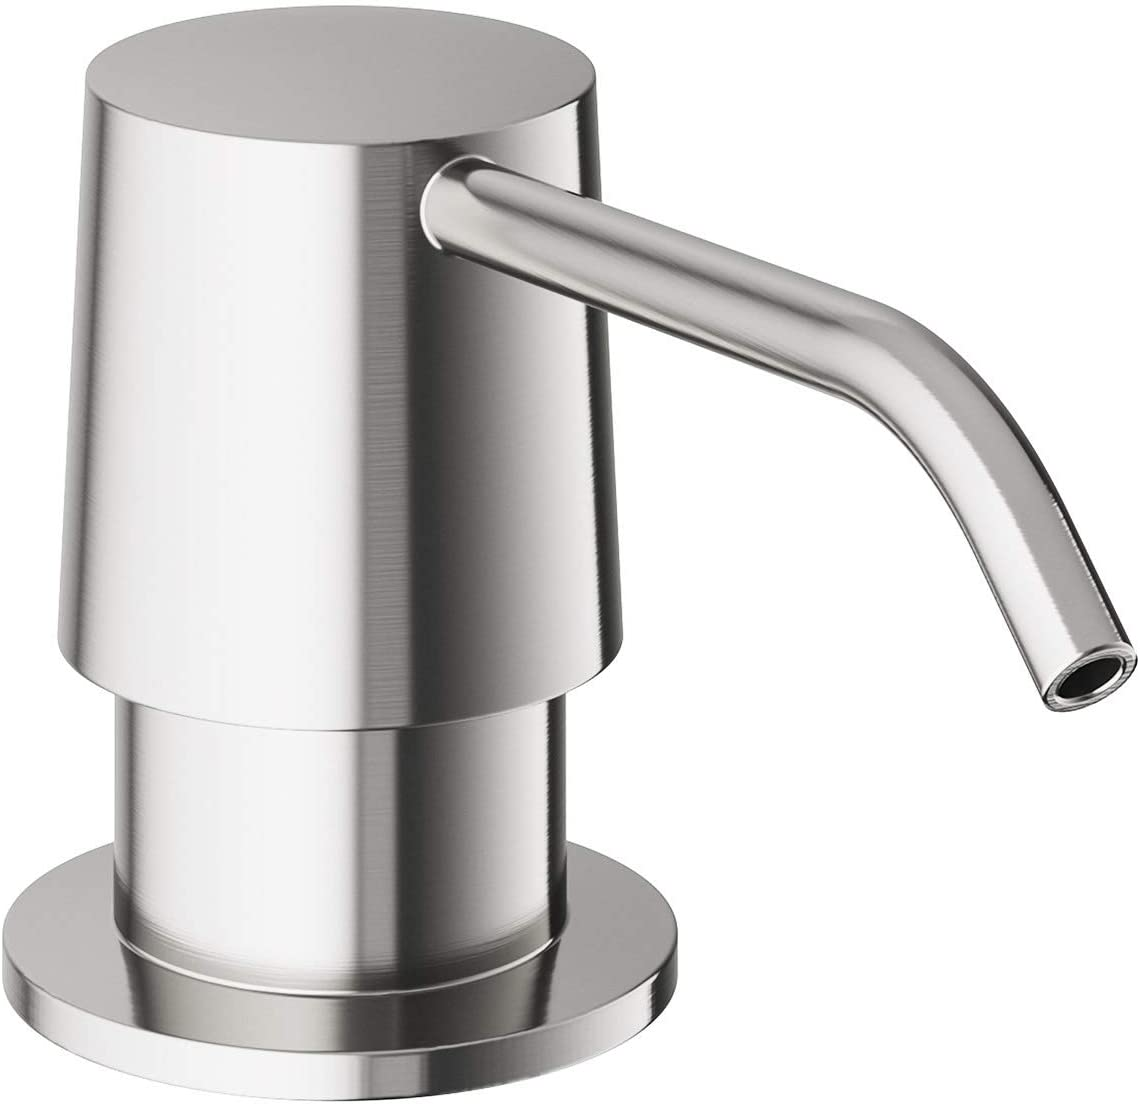 VIGO Kitchen Soap Dispenser Steel Large special Tucson Mall price Stainless In